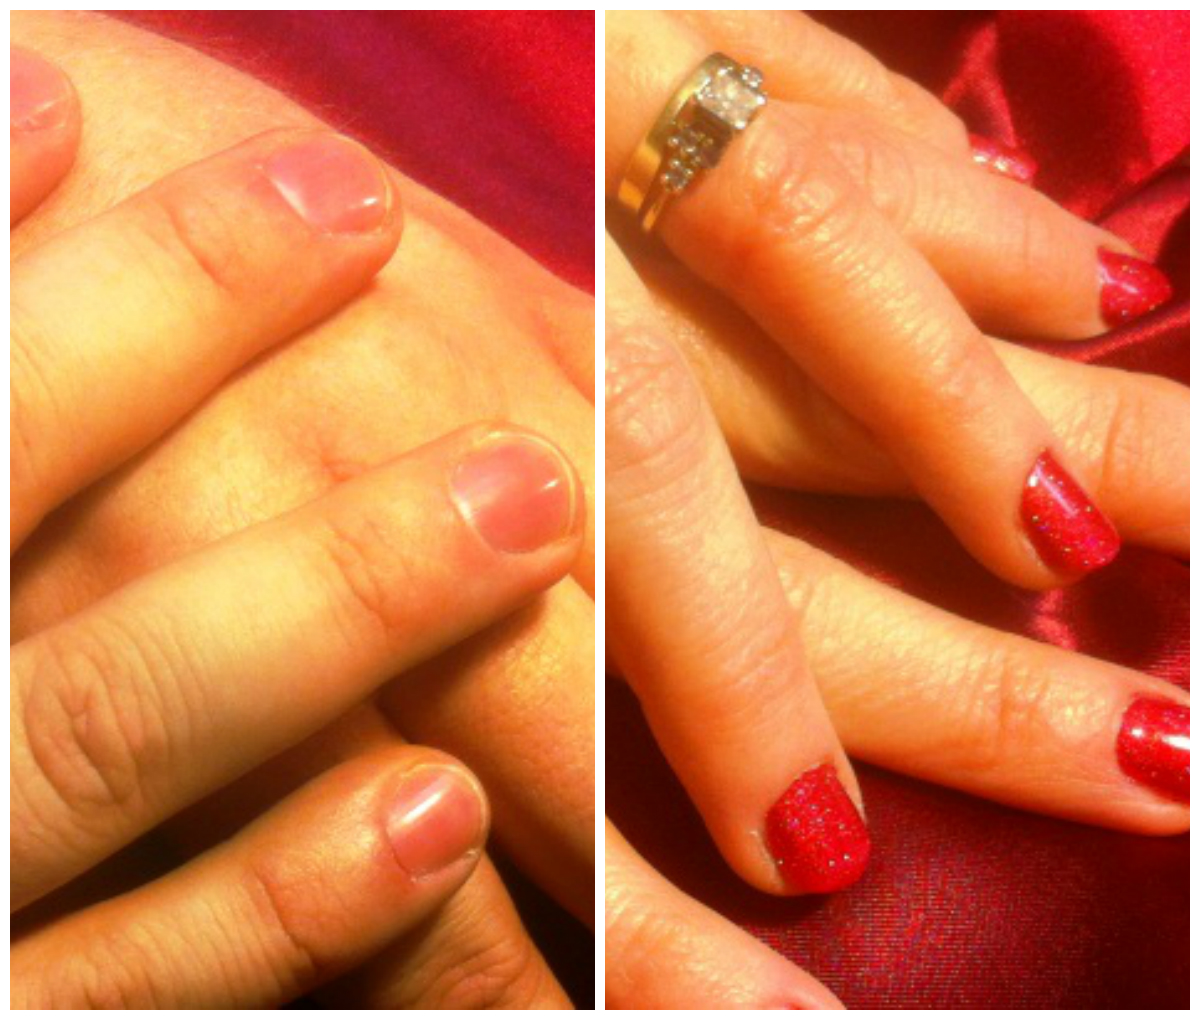 His and Hers Manicures